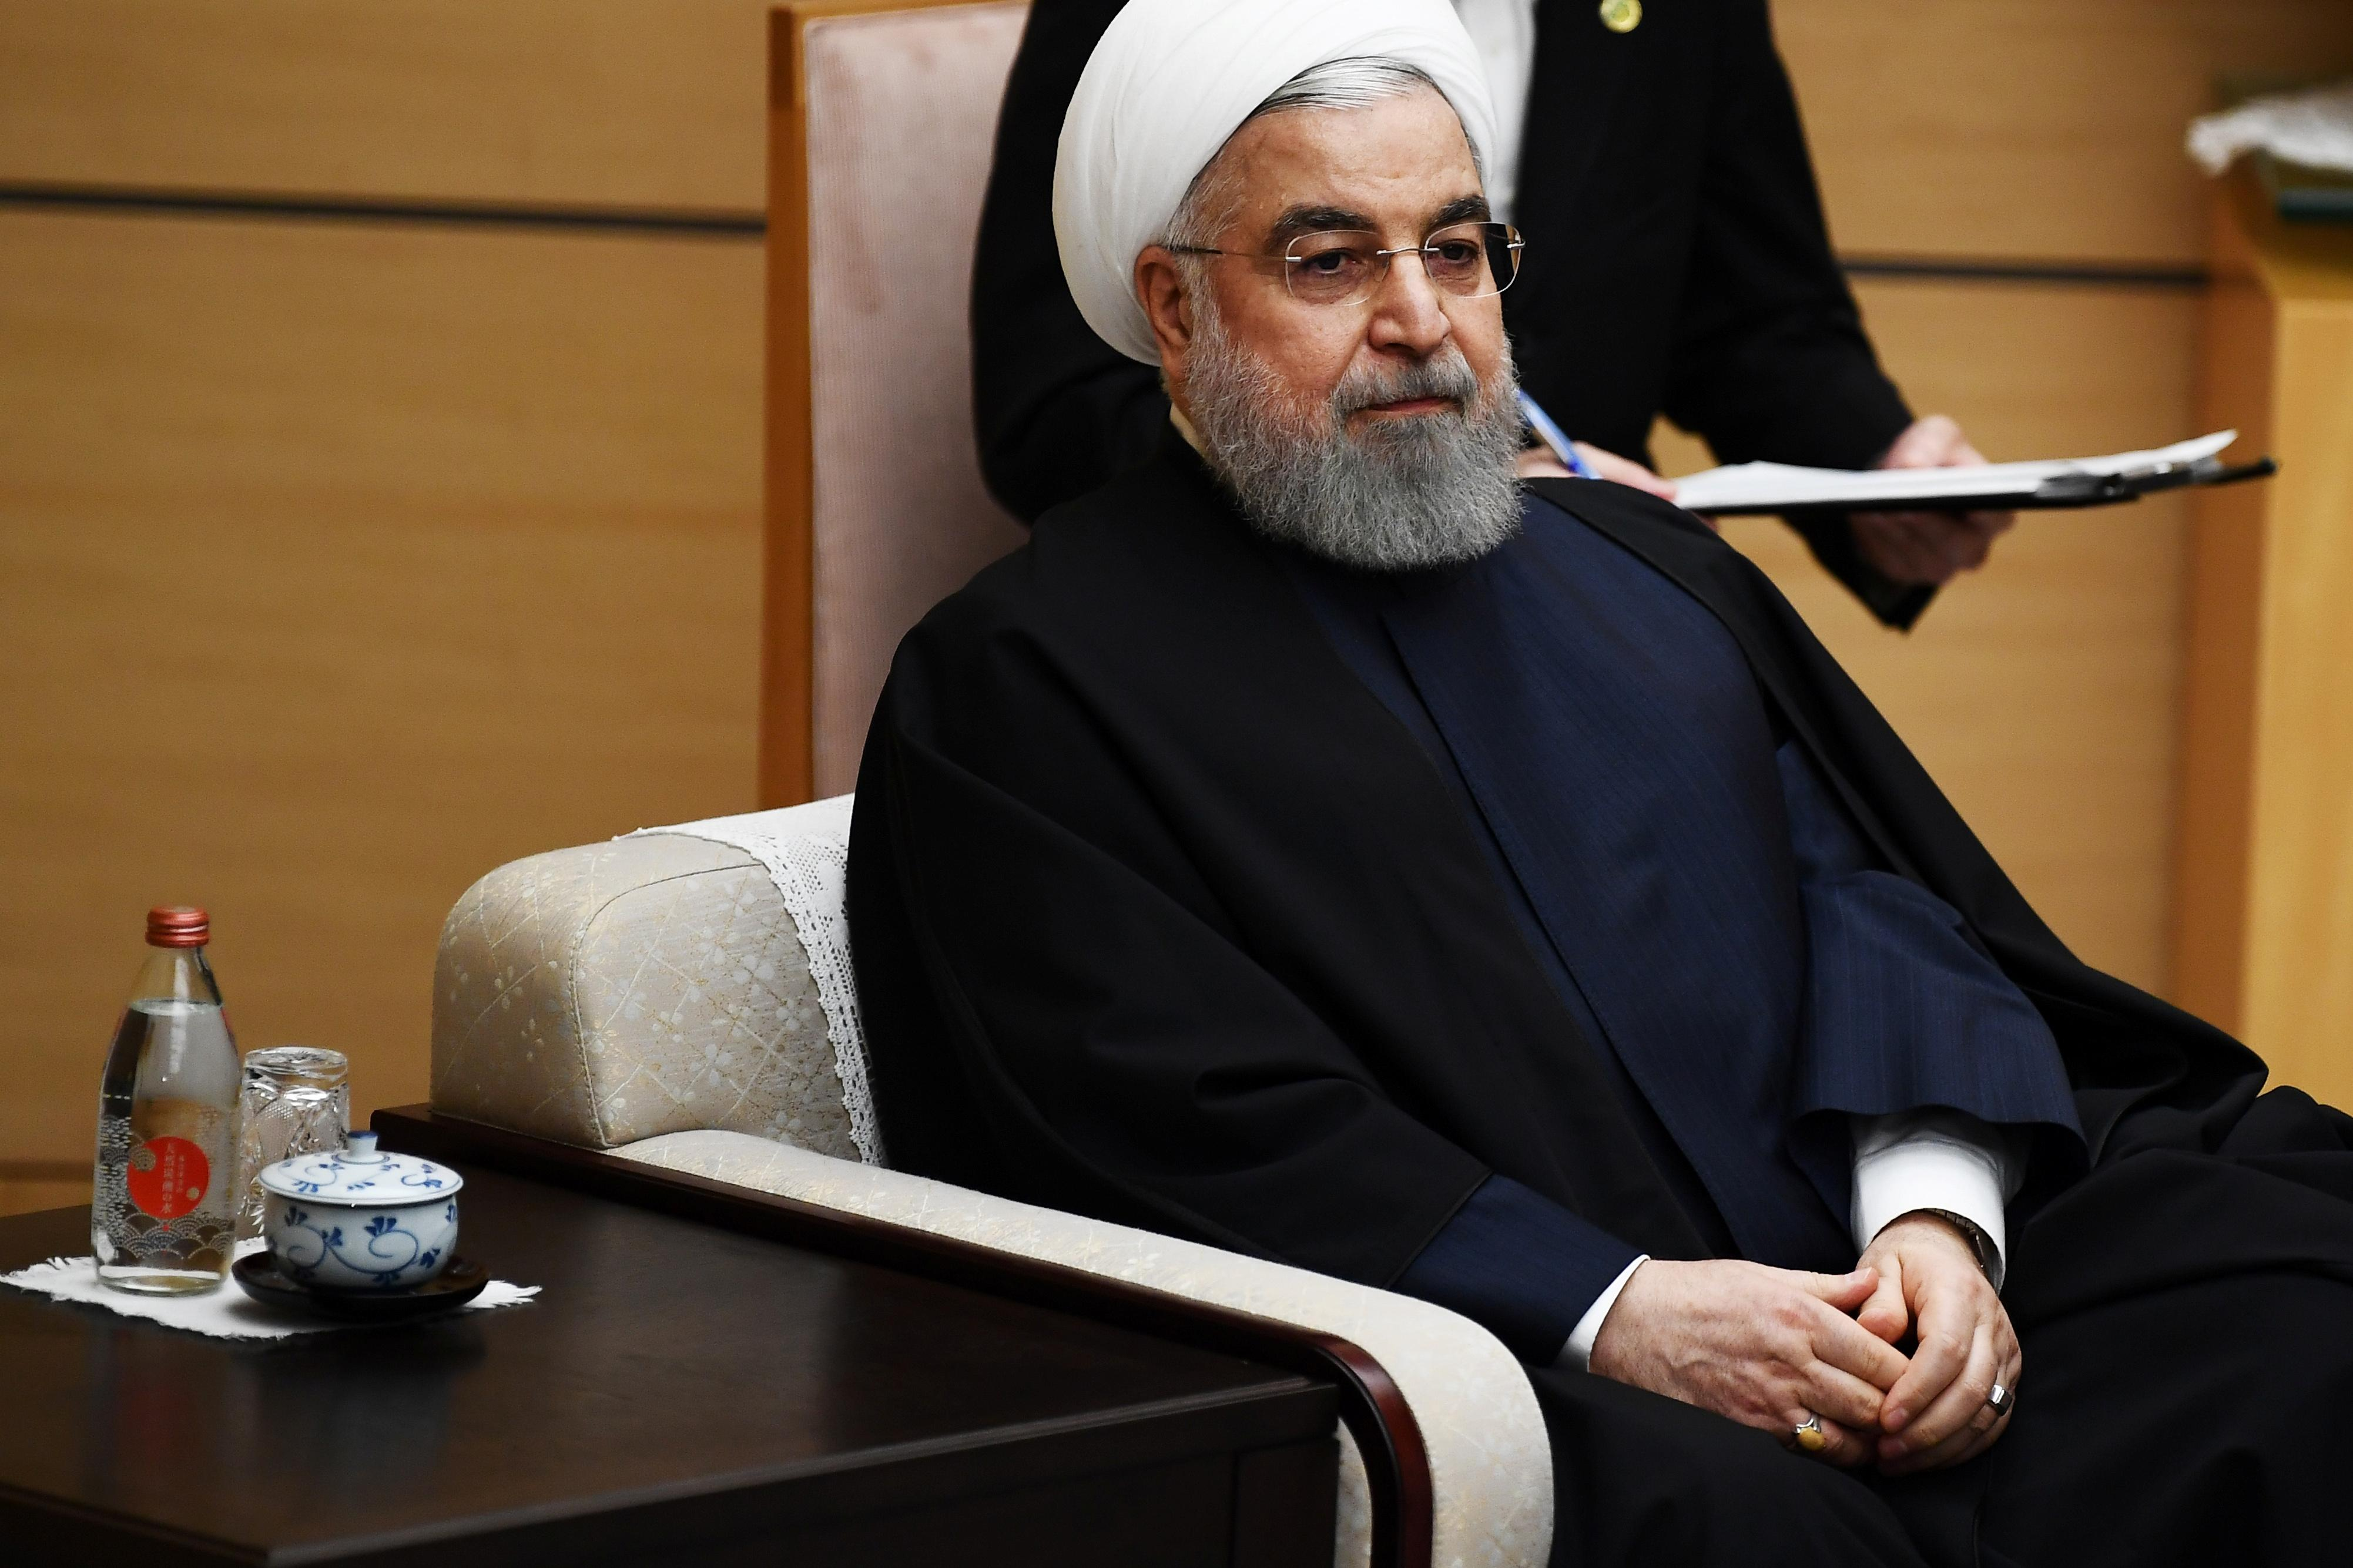 Iran's Rouhani calls for unity, accuses Trump of exploiting rift